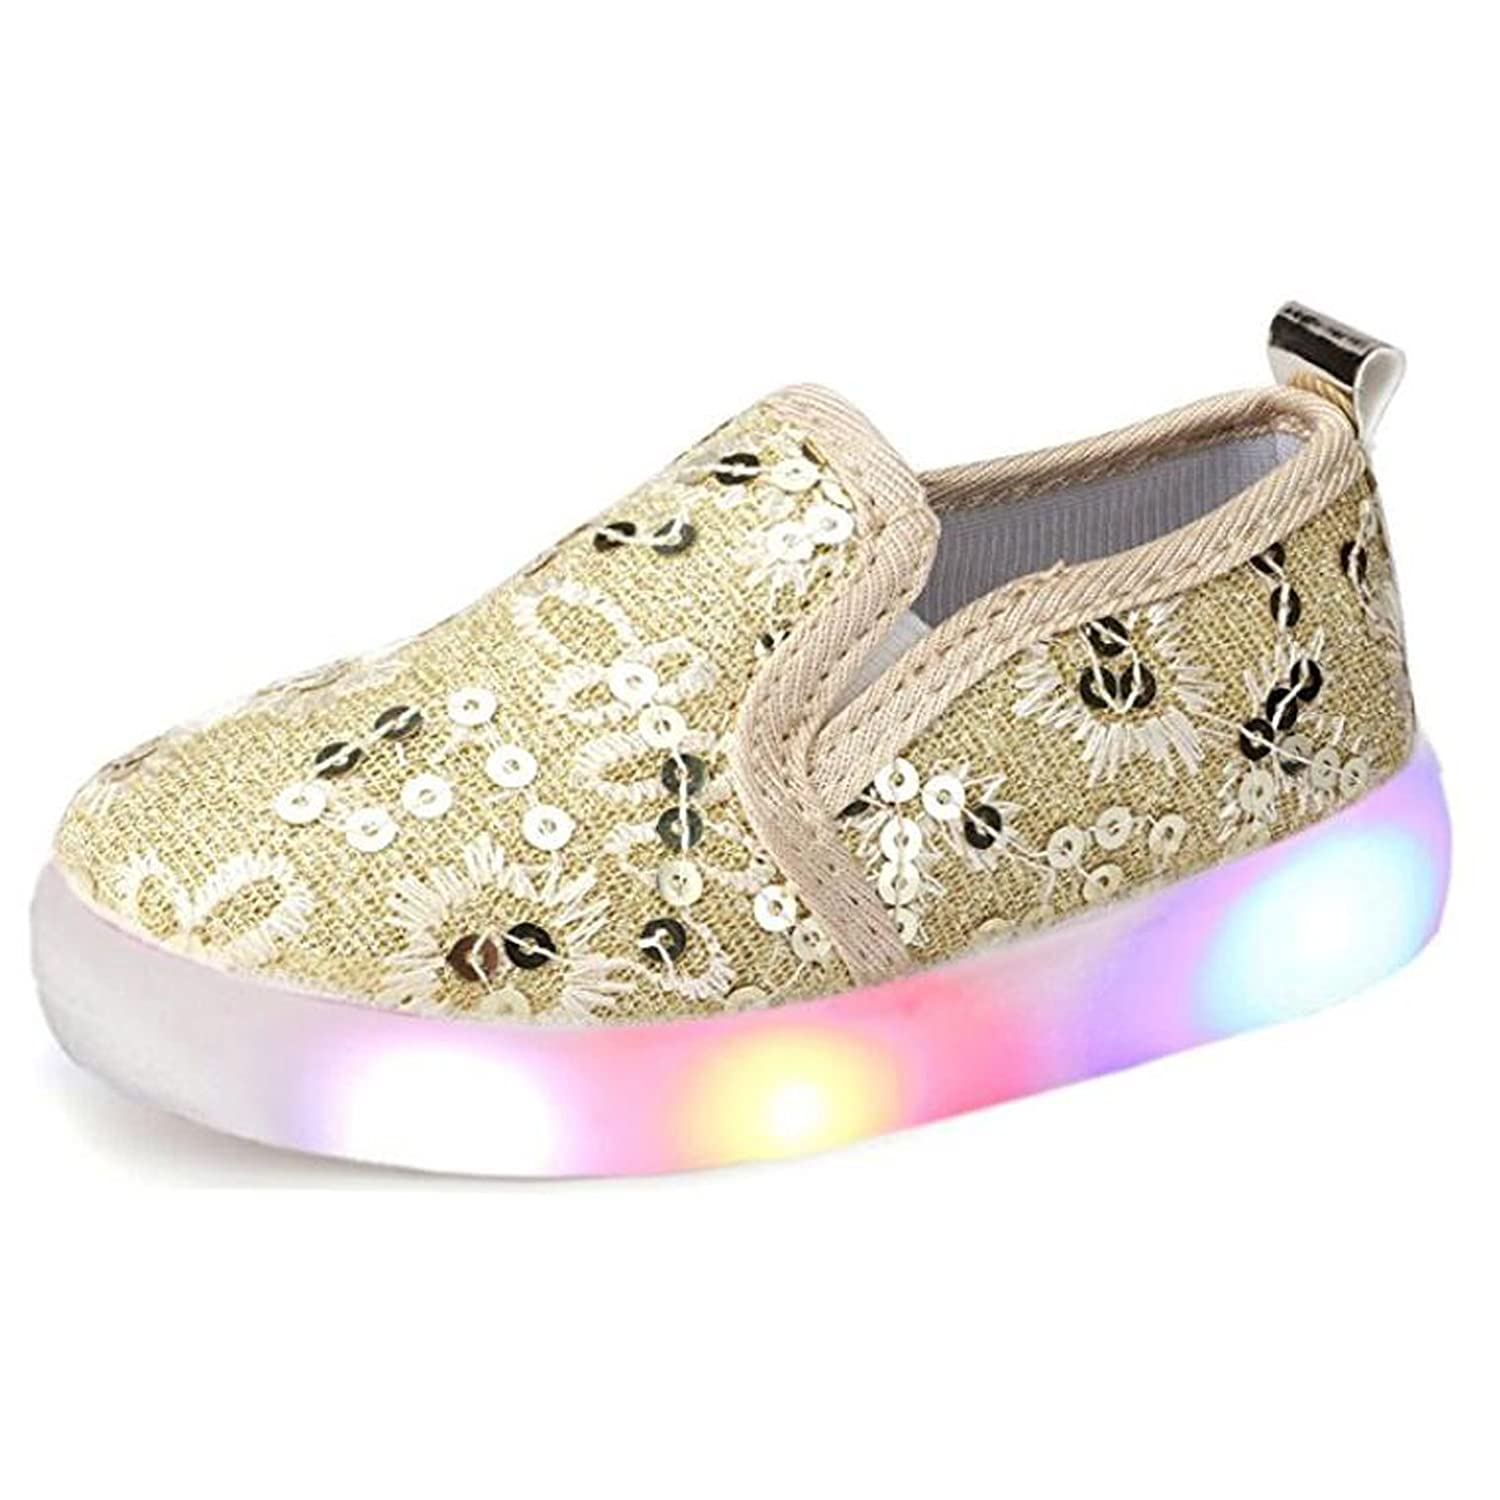 Otamise Girls' Light Up Sequins Shoes Slip-On Flashing LED Casual Loafers Flat Sneakers (Toddler/Little Kid)